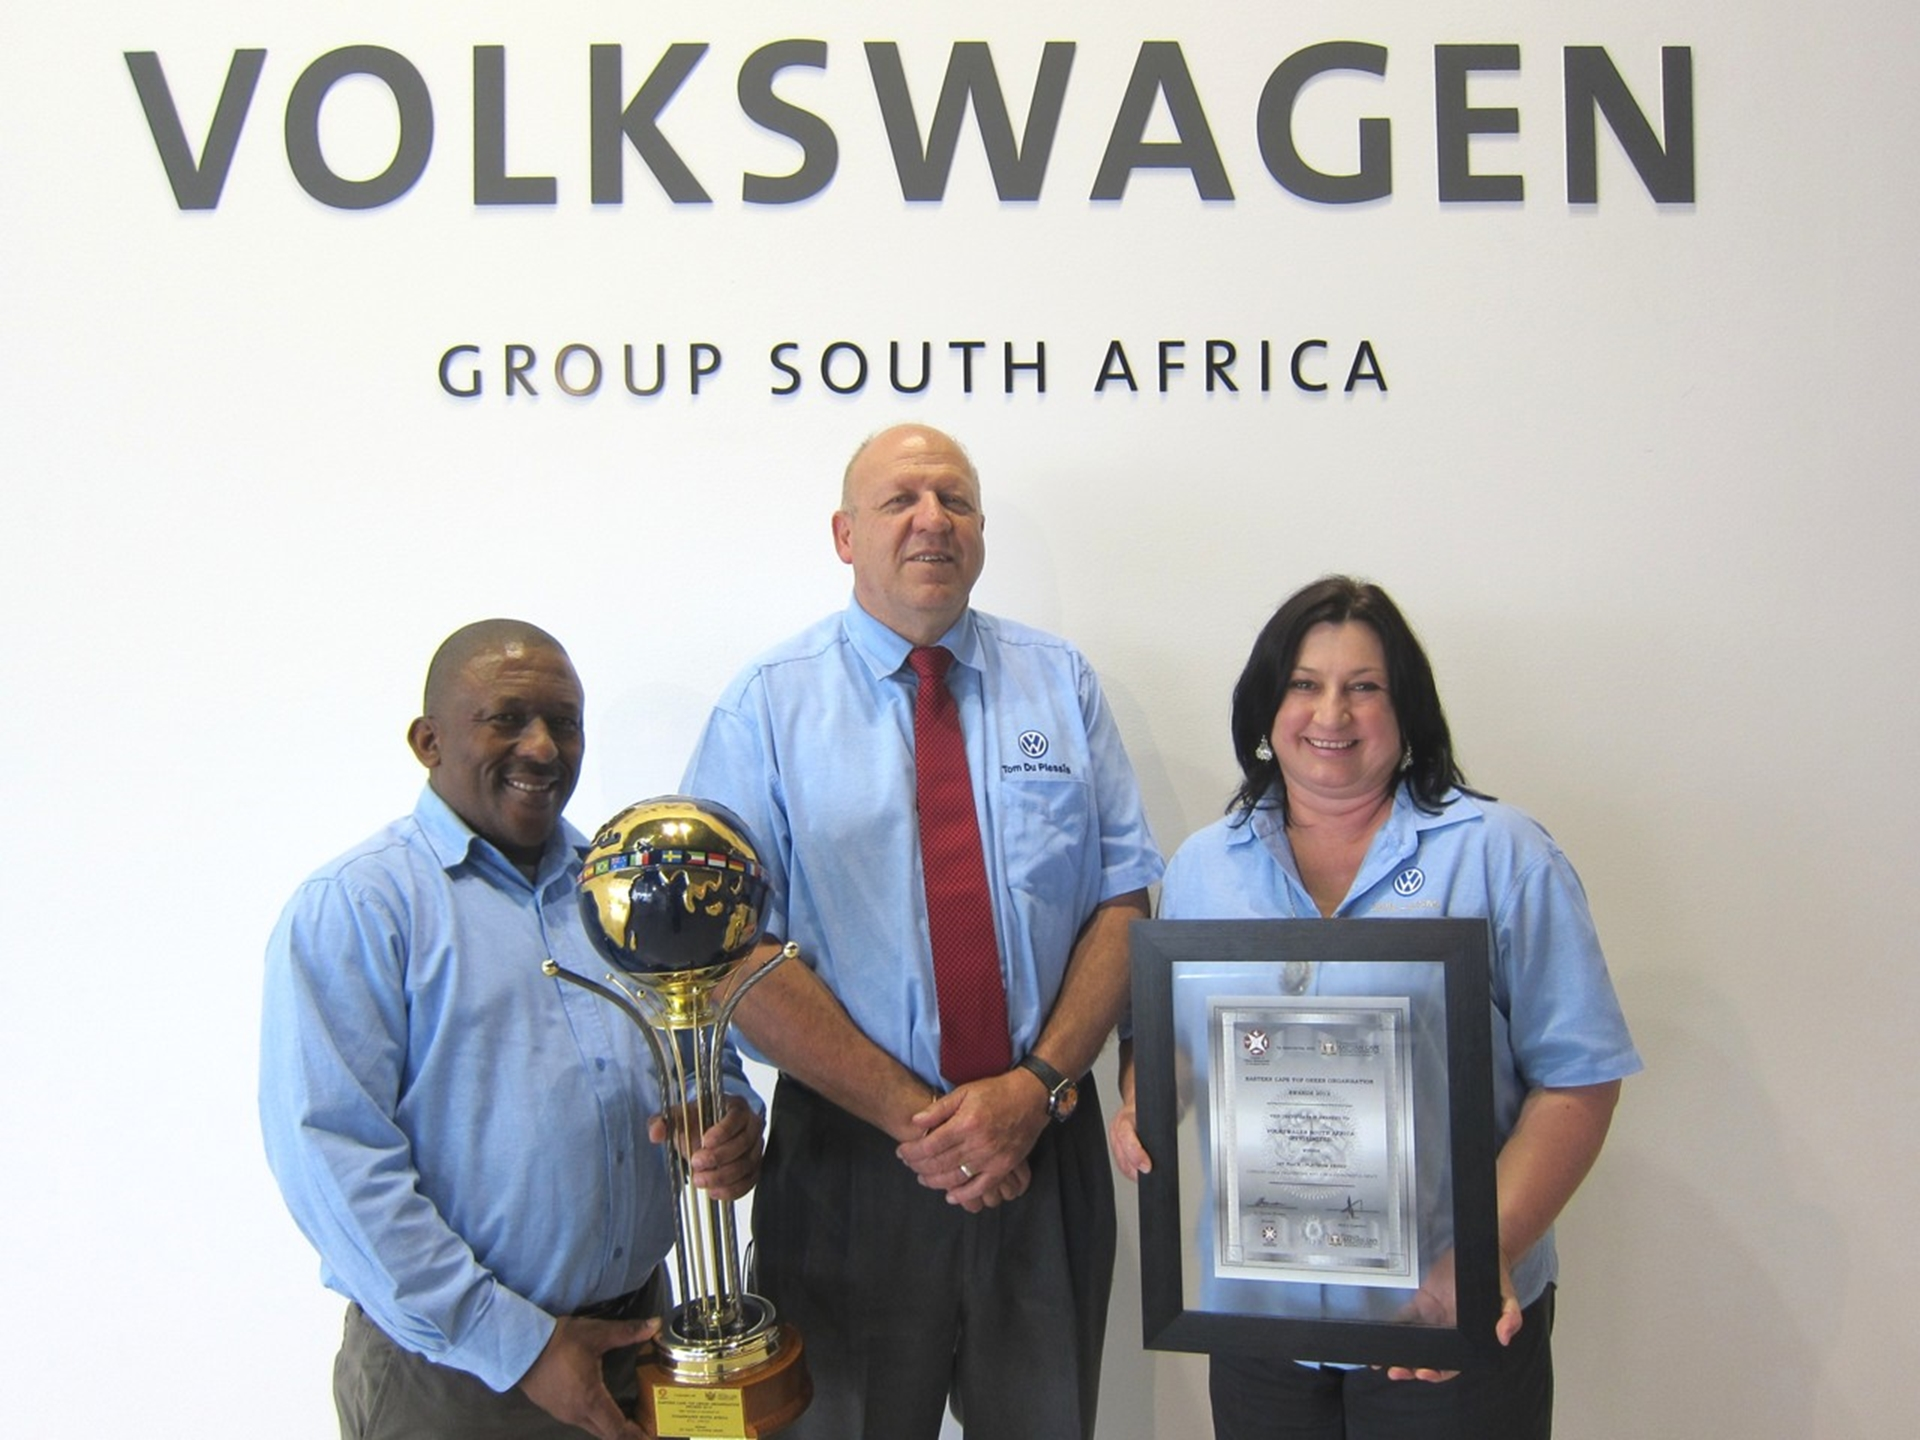 Volkswagen Group South Africa